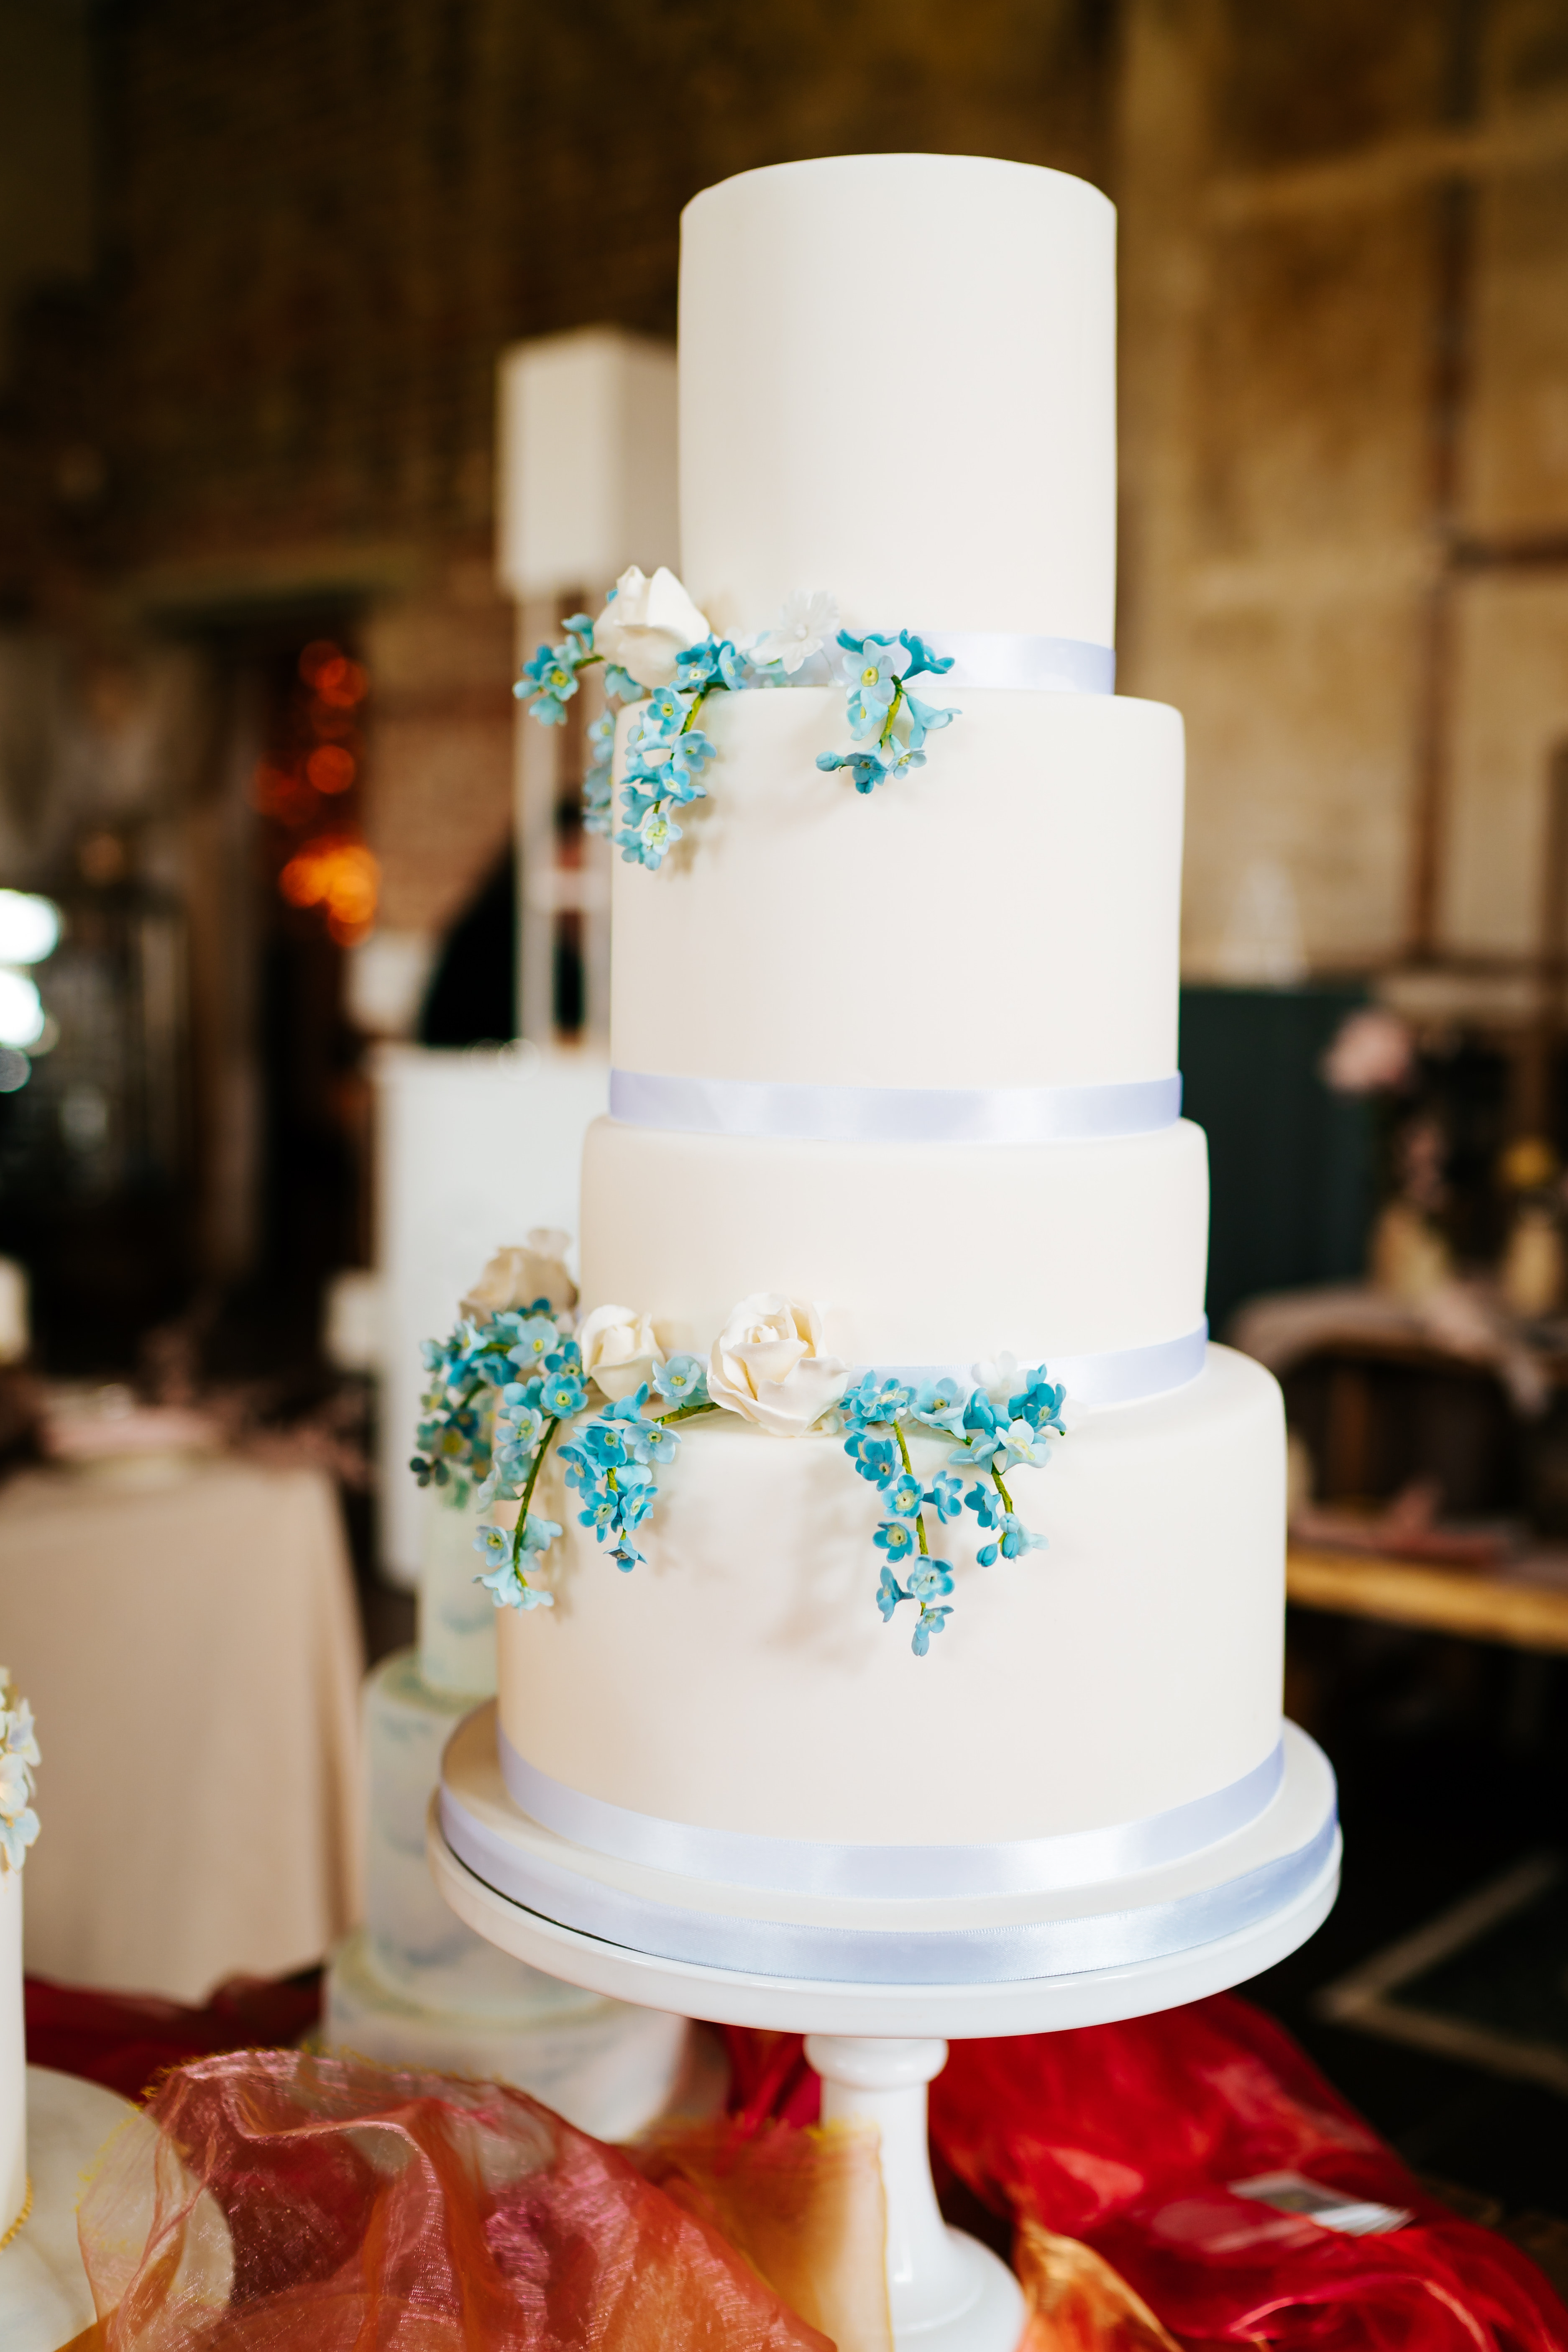 Forget Me Nots Wedding Cake with Photo Courtesy of Angela Ward-Brown Photography